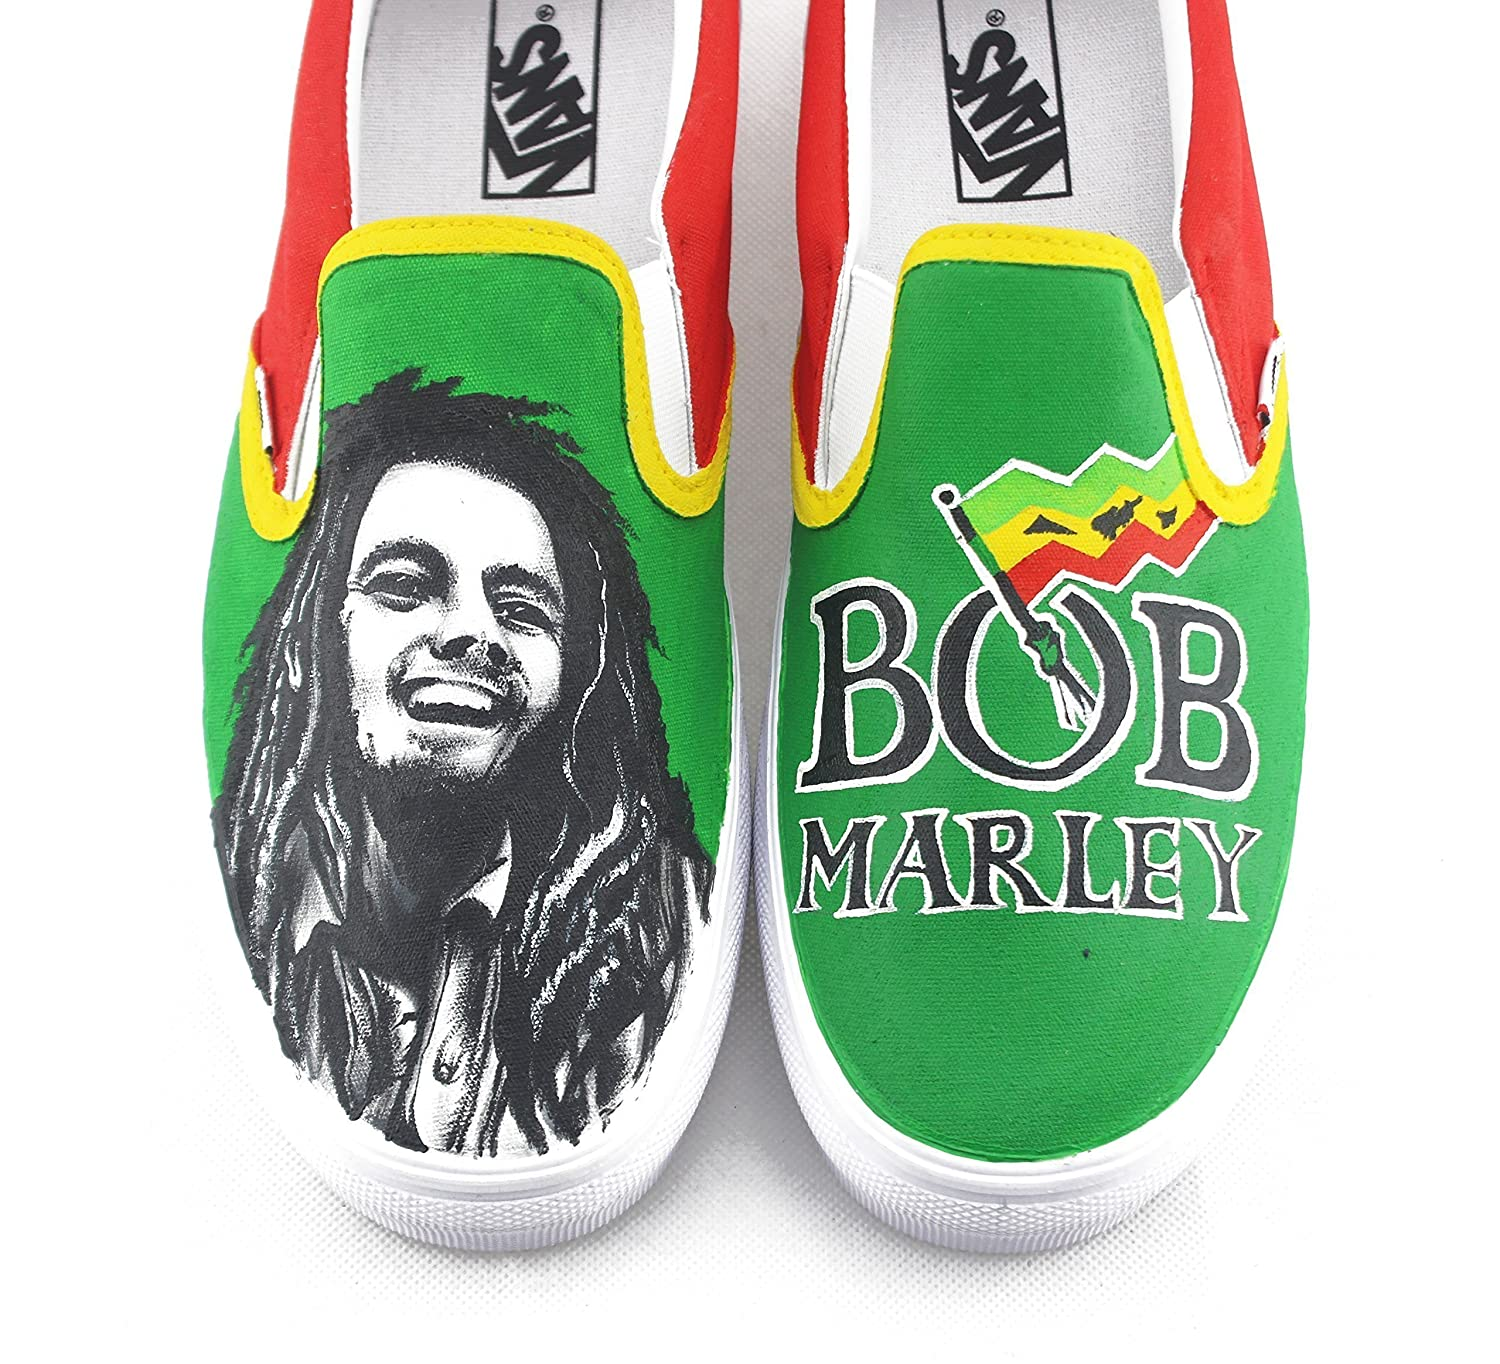 Hand Painted Shoes Vans Custom Sneakers Bob Marley Painted Shoes Men Women Sneakers